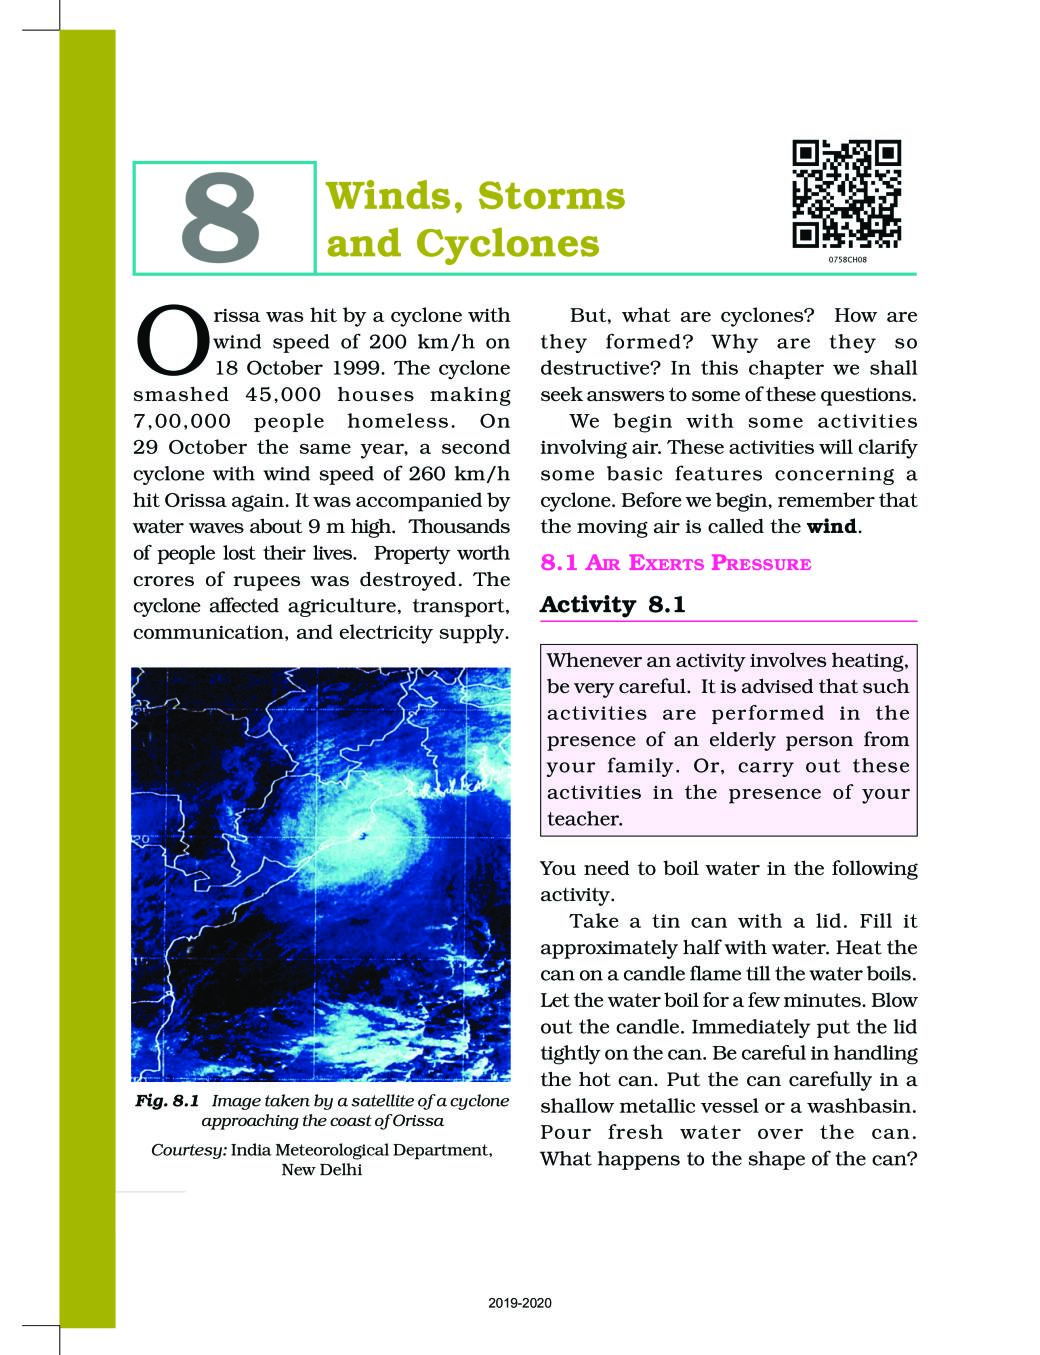 NCERT Book Class 7 Science Chapter 8 Winds Storms and Cyclones